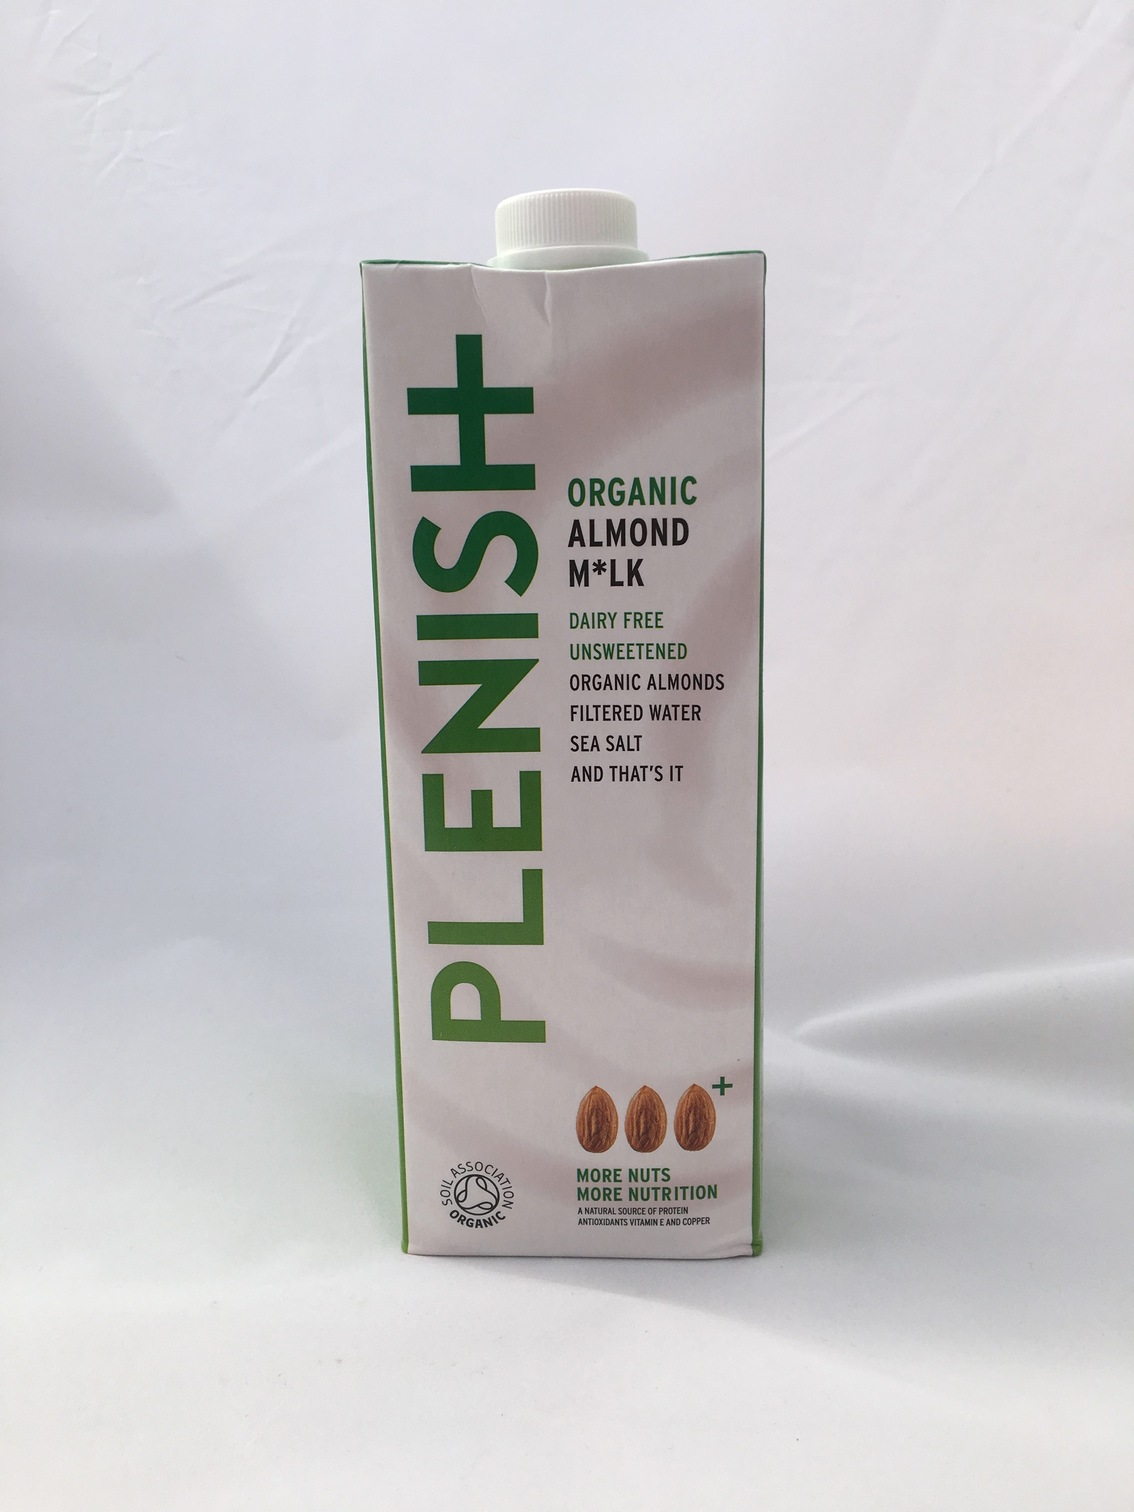 Plenish organic almond milk, dairy free unsweetened organic almonds, filtered water and sea salt. A delicious plant-based milk to use in all recipes required dairy milk.